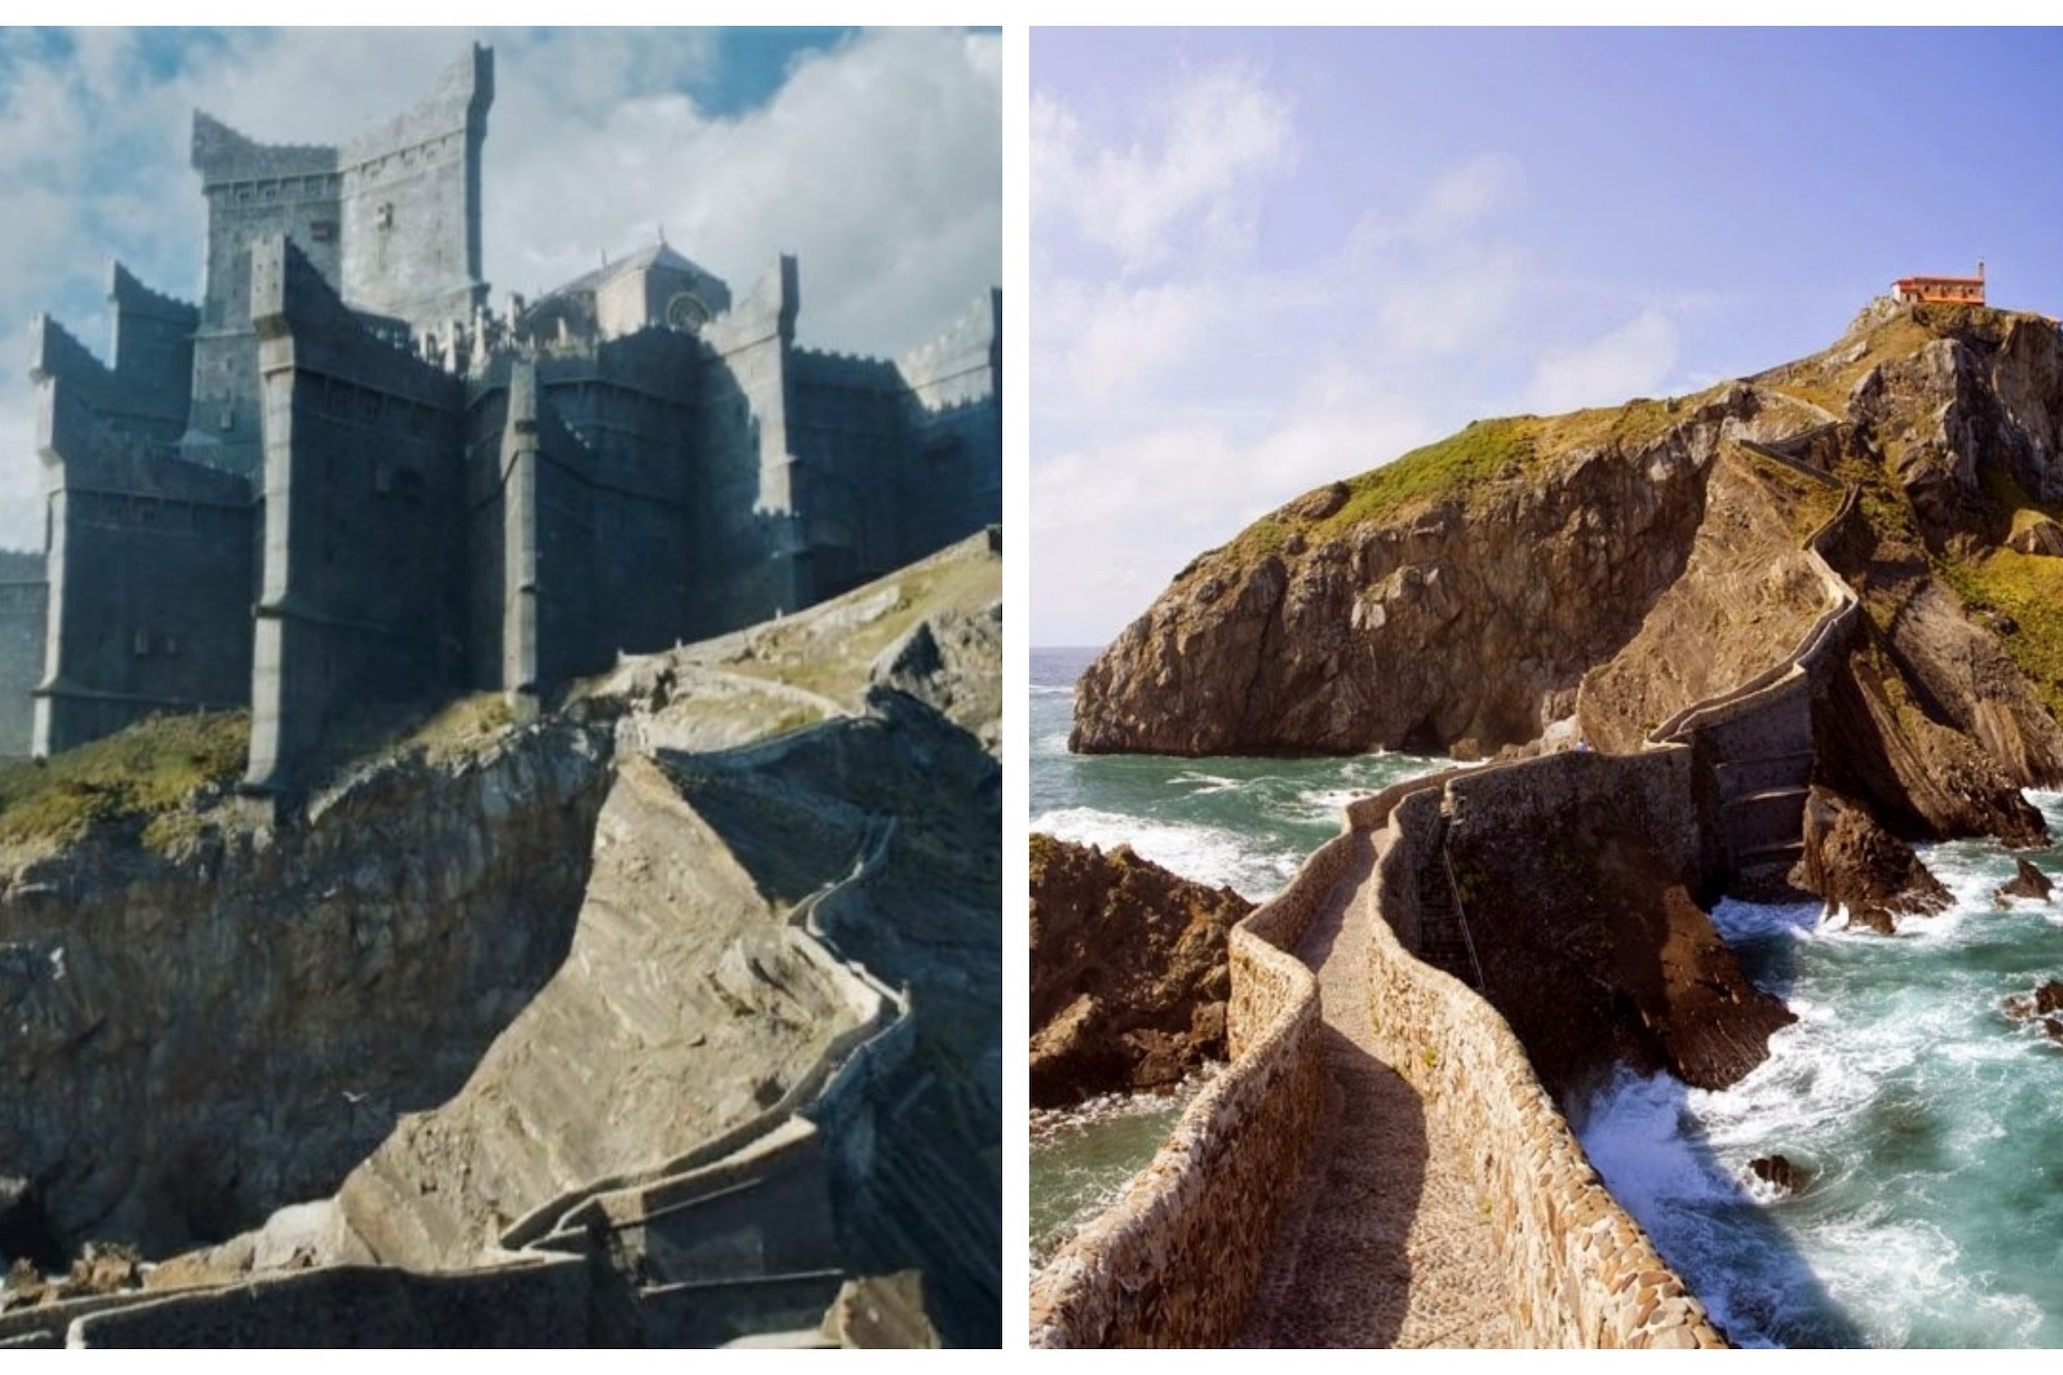 13 Game of Thrones Locations You Can Visit in Real Life